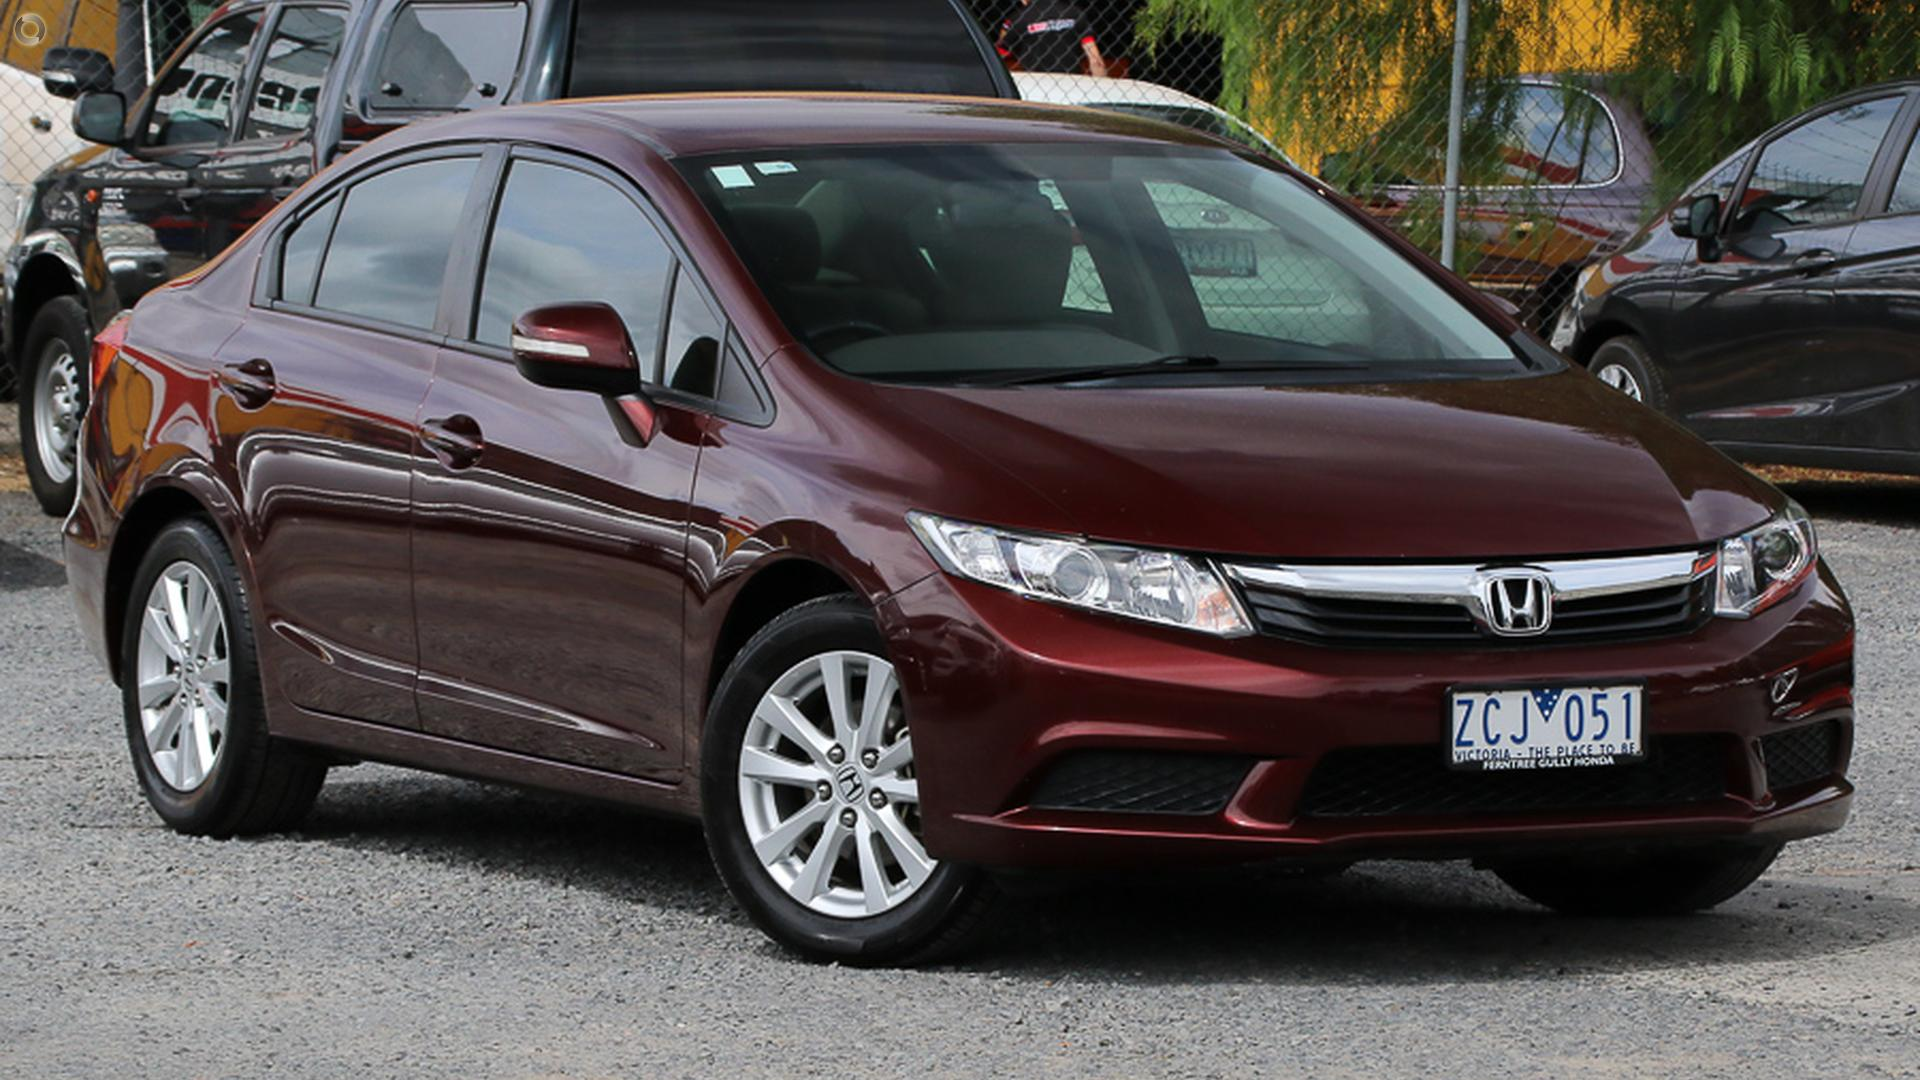 2012 Honda Civic 9th Gen